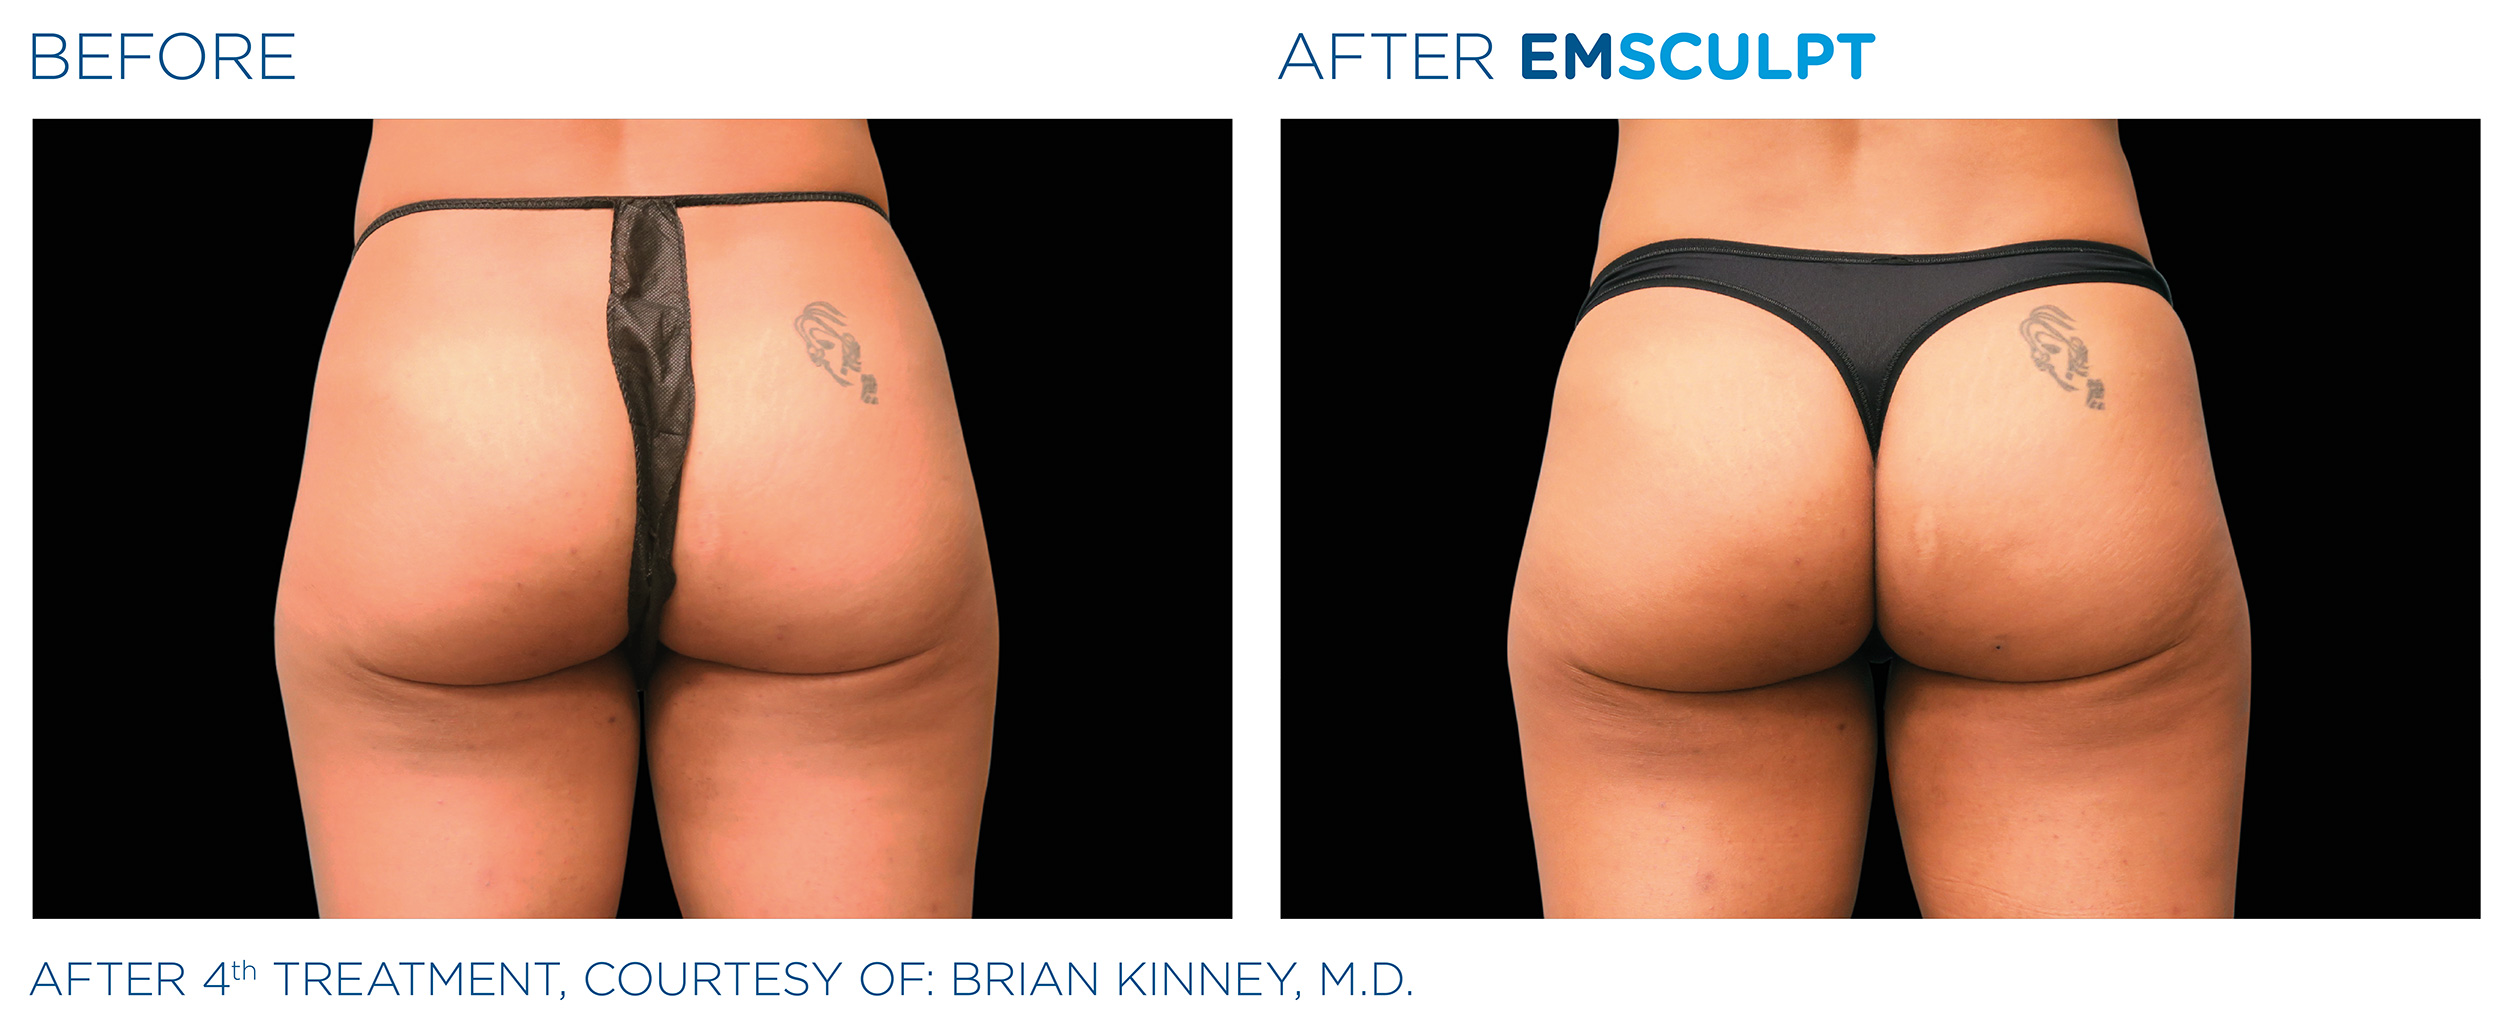 EMSCULPT Before & After Photos | Female Buttocks 4